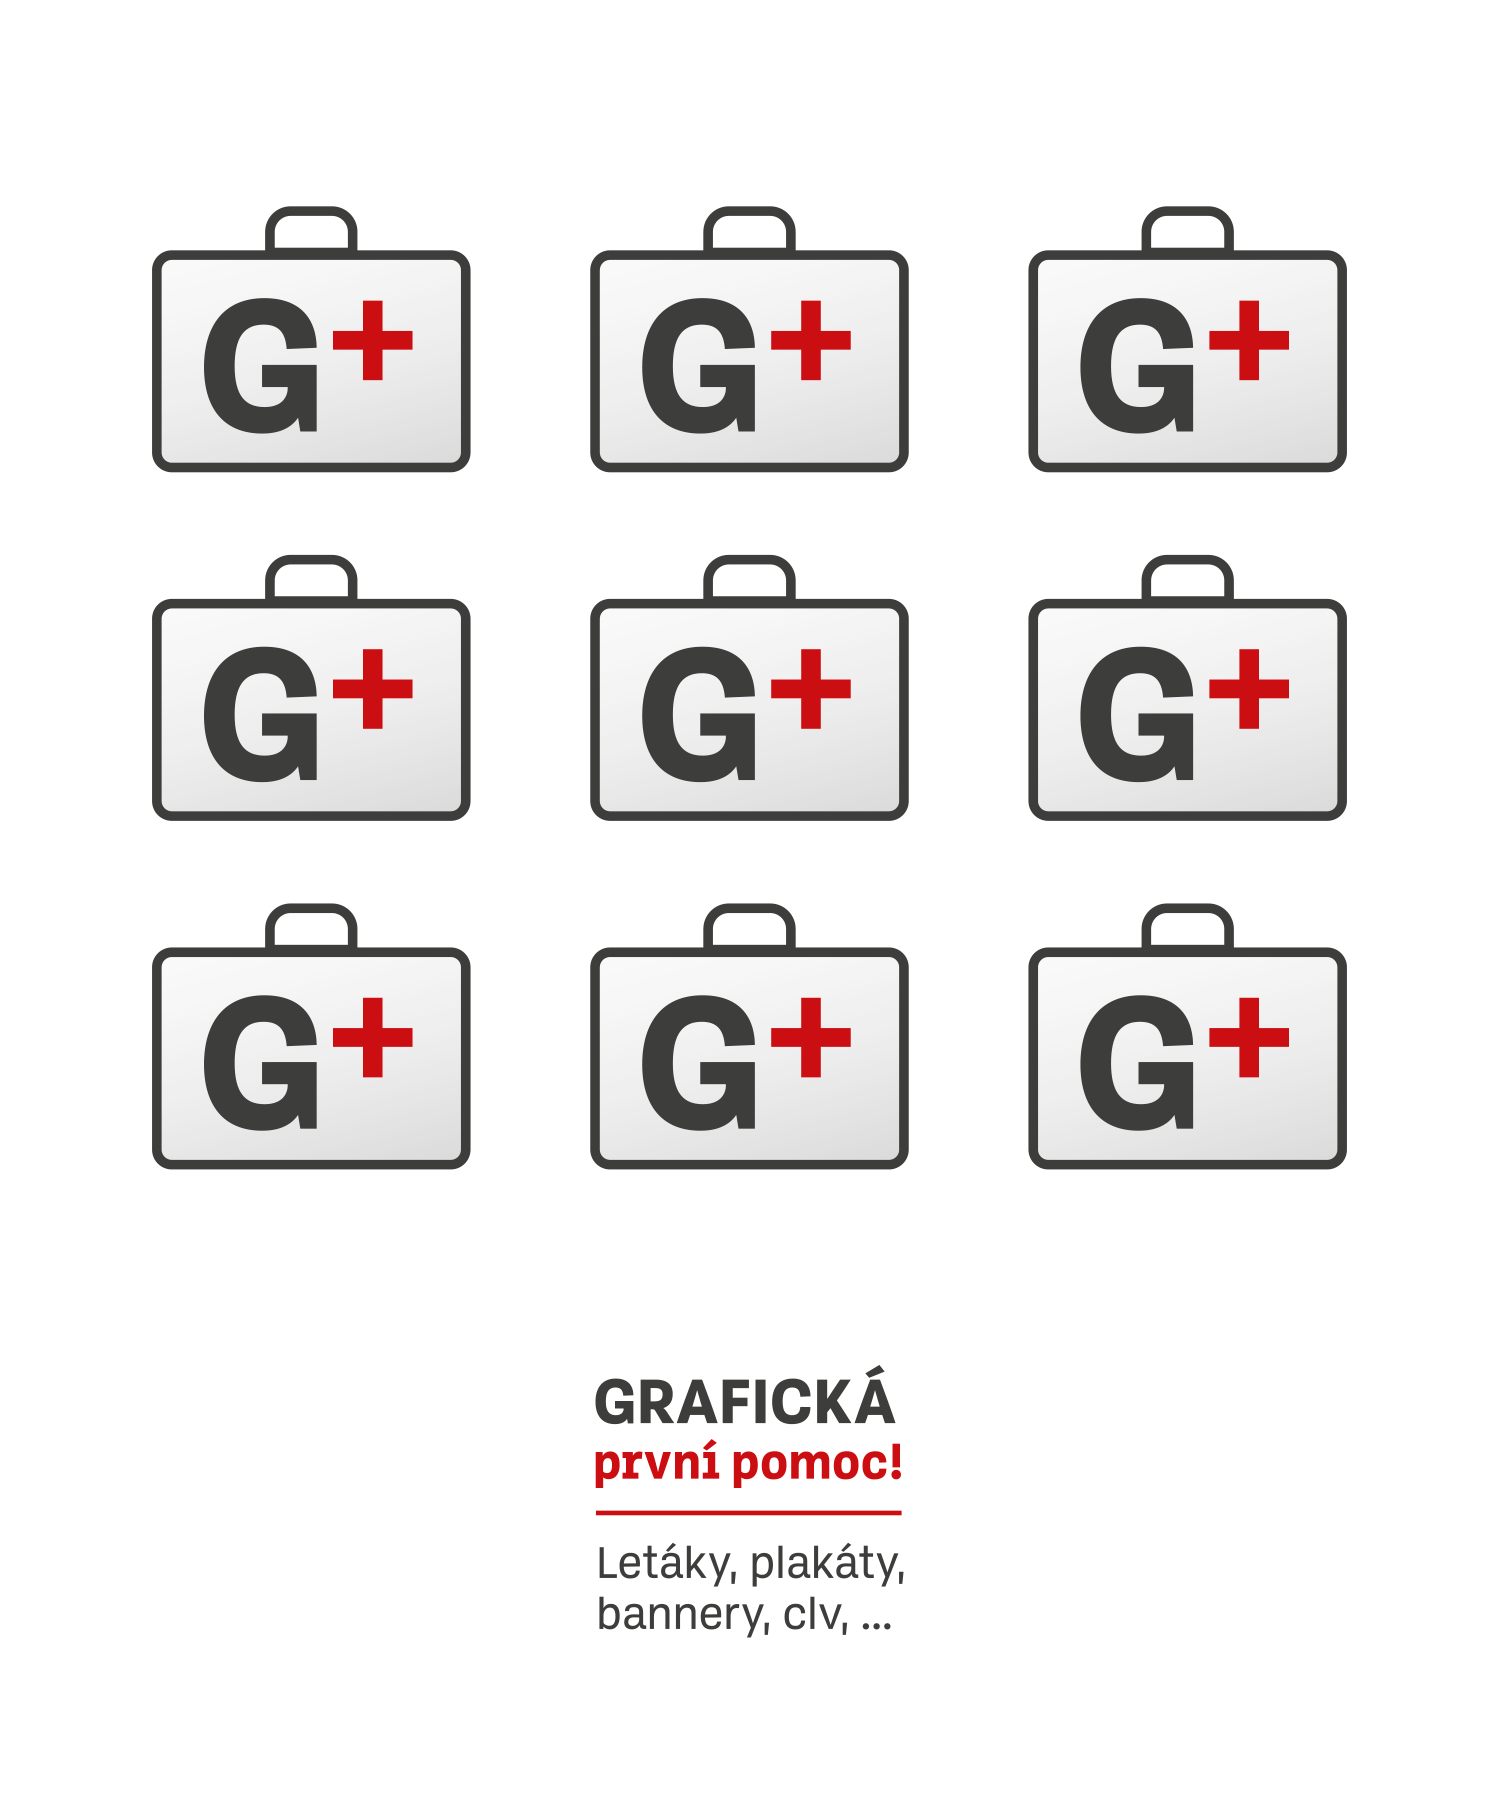 [album/Products_Model_Product/113/graficka_prvni_pomoc_content_2.png]